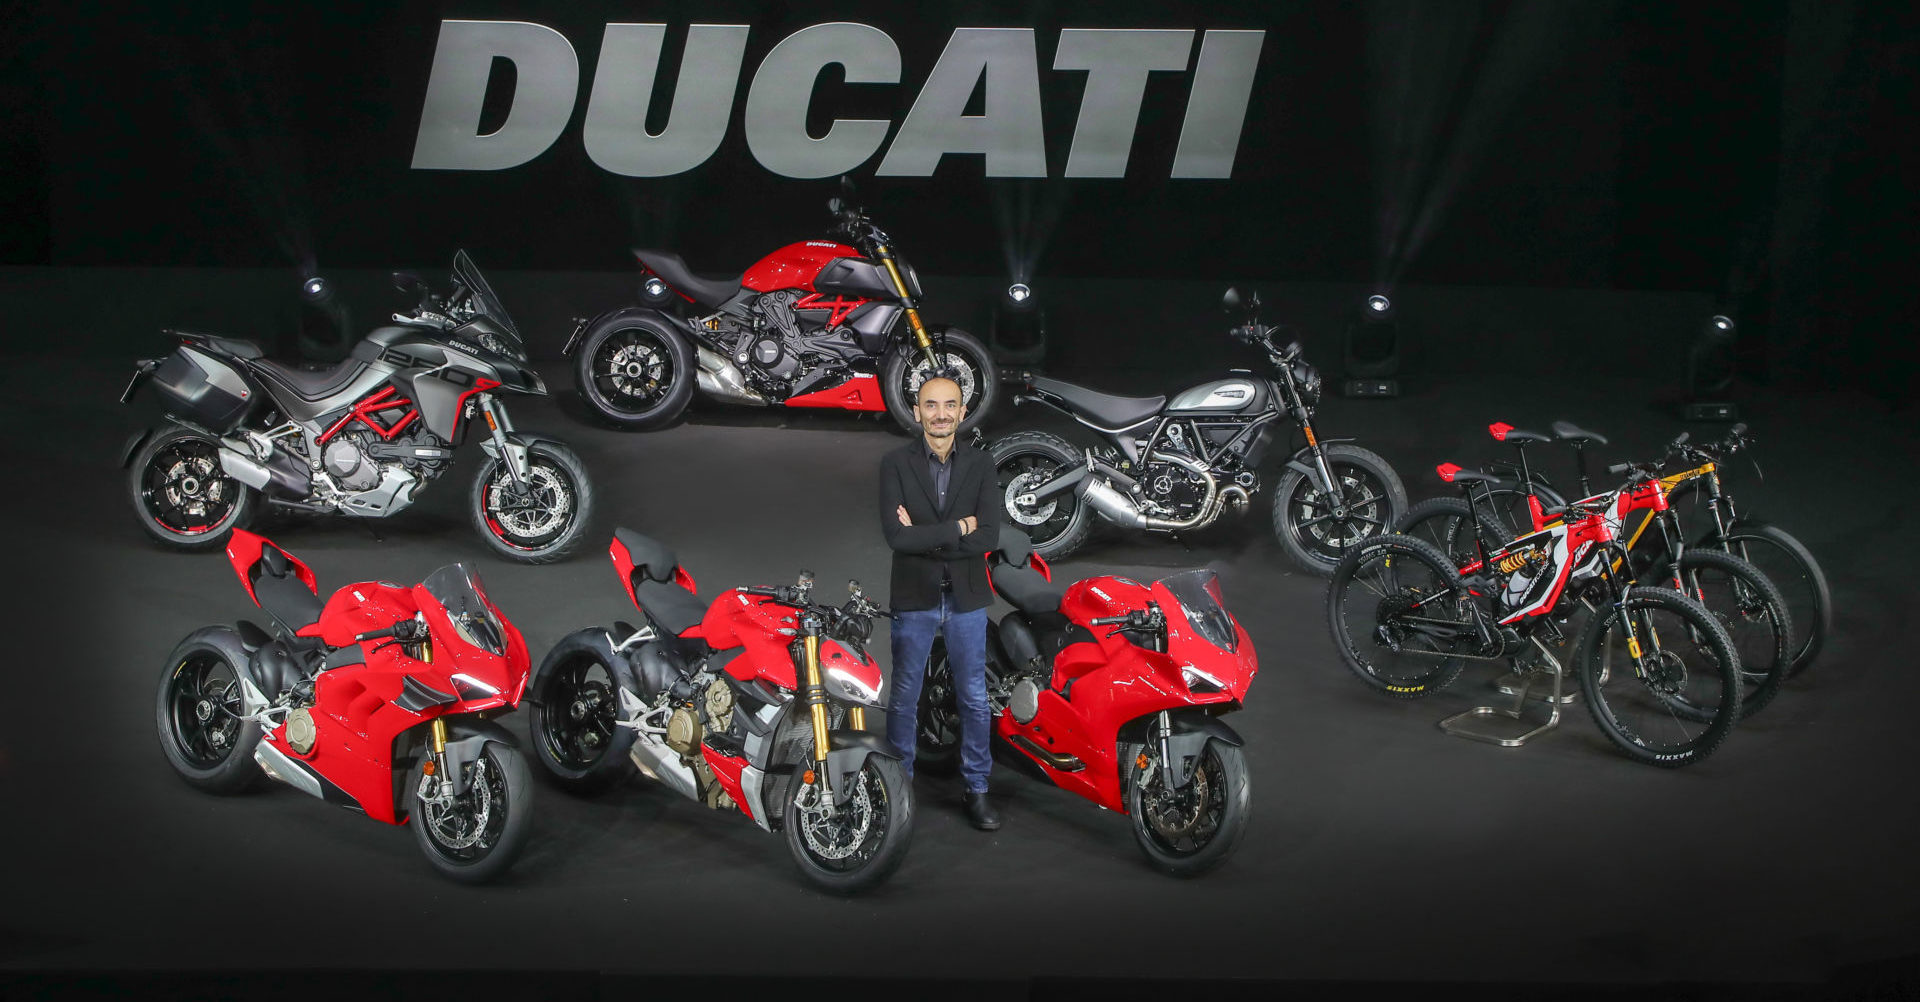 Ducati CEO Claudio Domenicali with Ducati's new 2020-model motorcycles and Ebikes. Photo courtesy of Ducati.